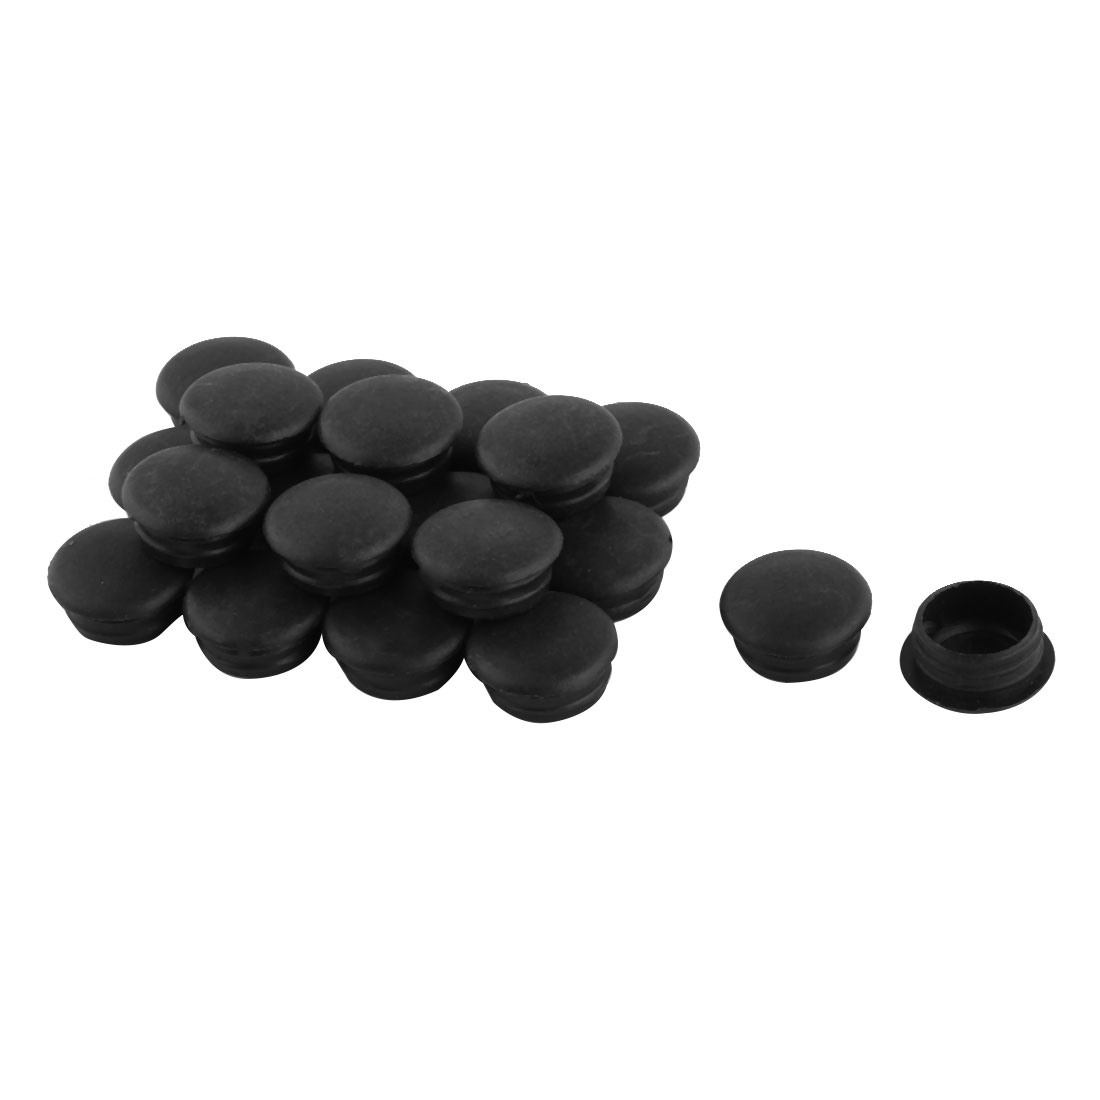 Plastic Furniture Pipe End Locking Hole Cover Tube Insert Black 15mm Dia 20pcs